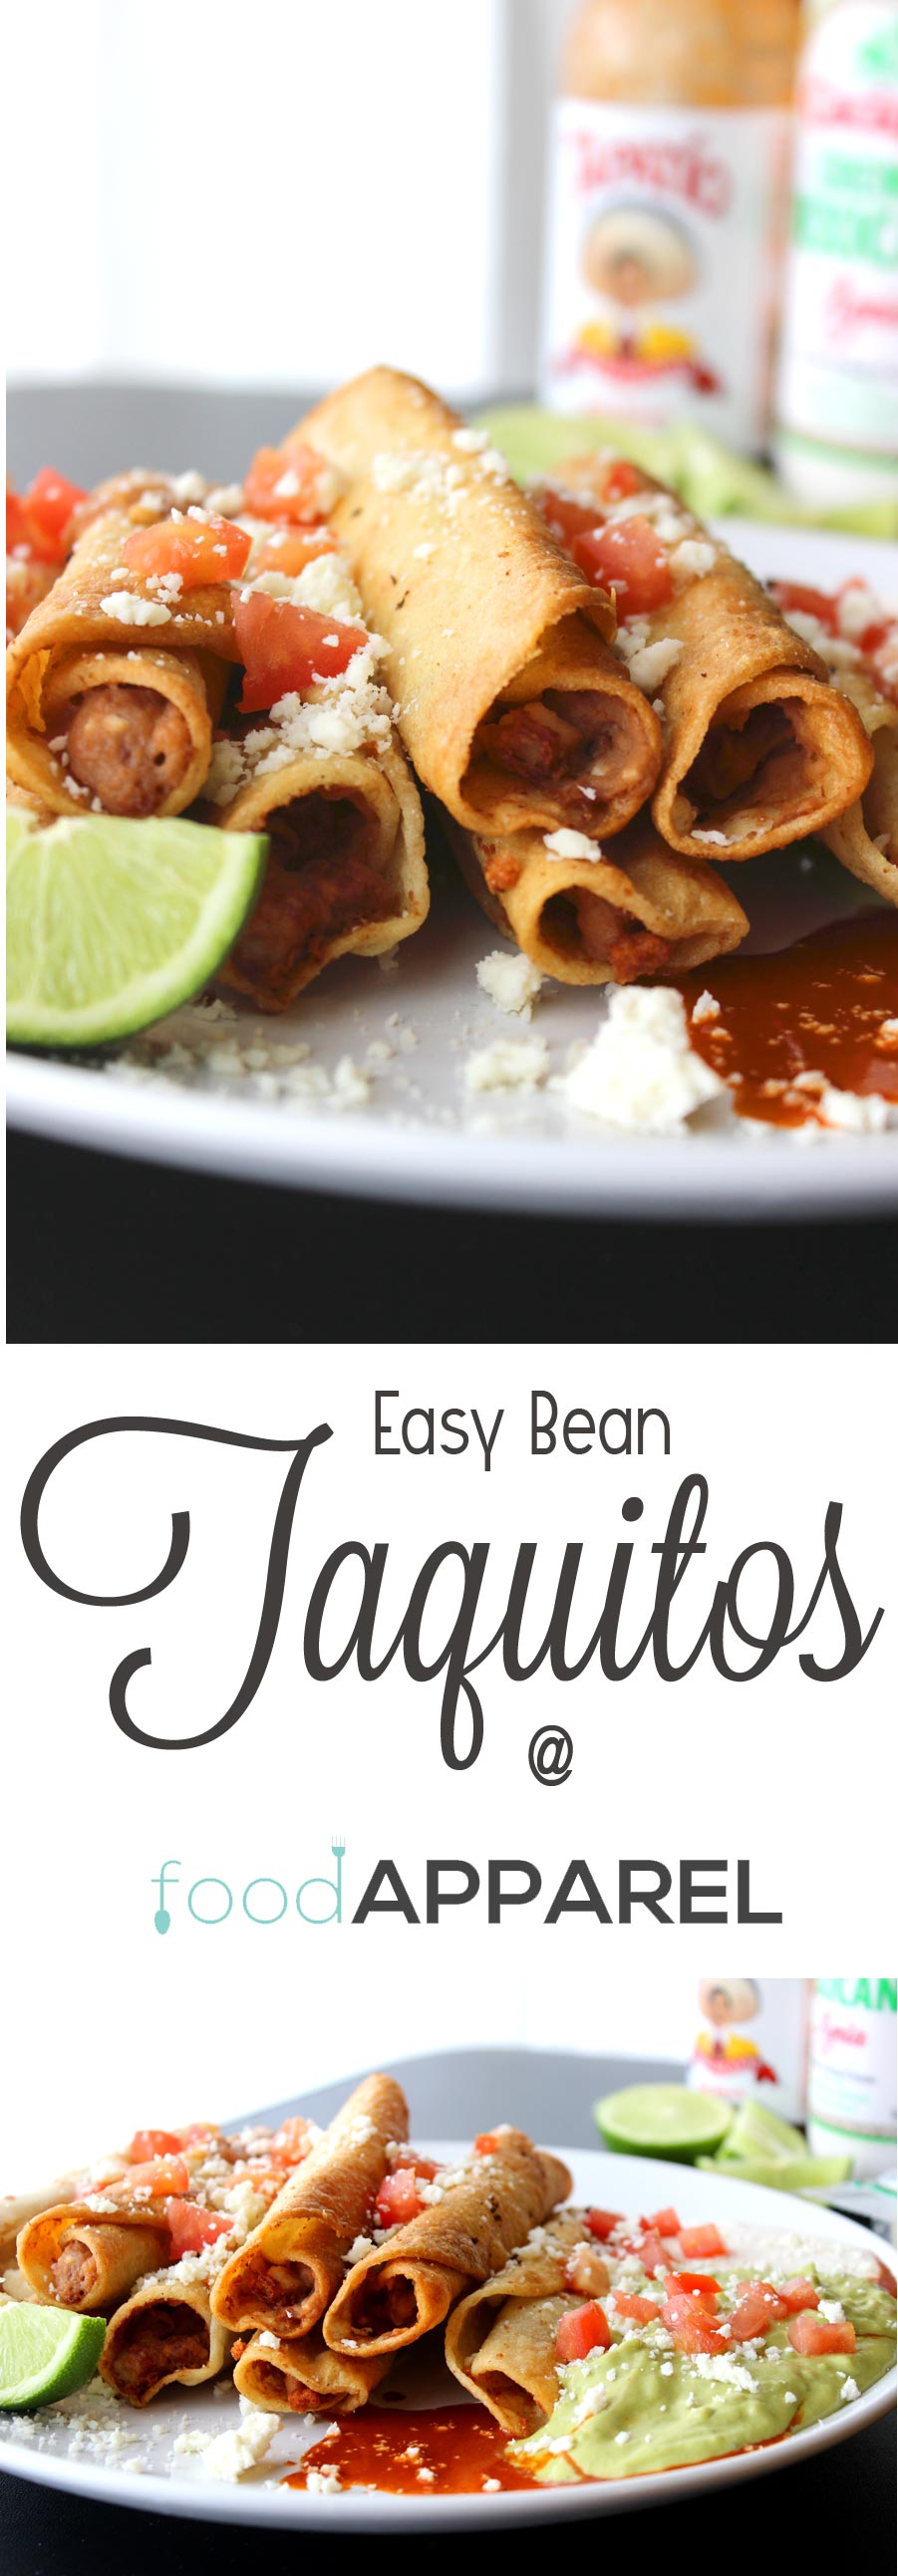 Easy Mexican Bean Taquitos - so easy and SOOOOO good!